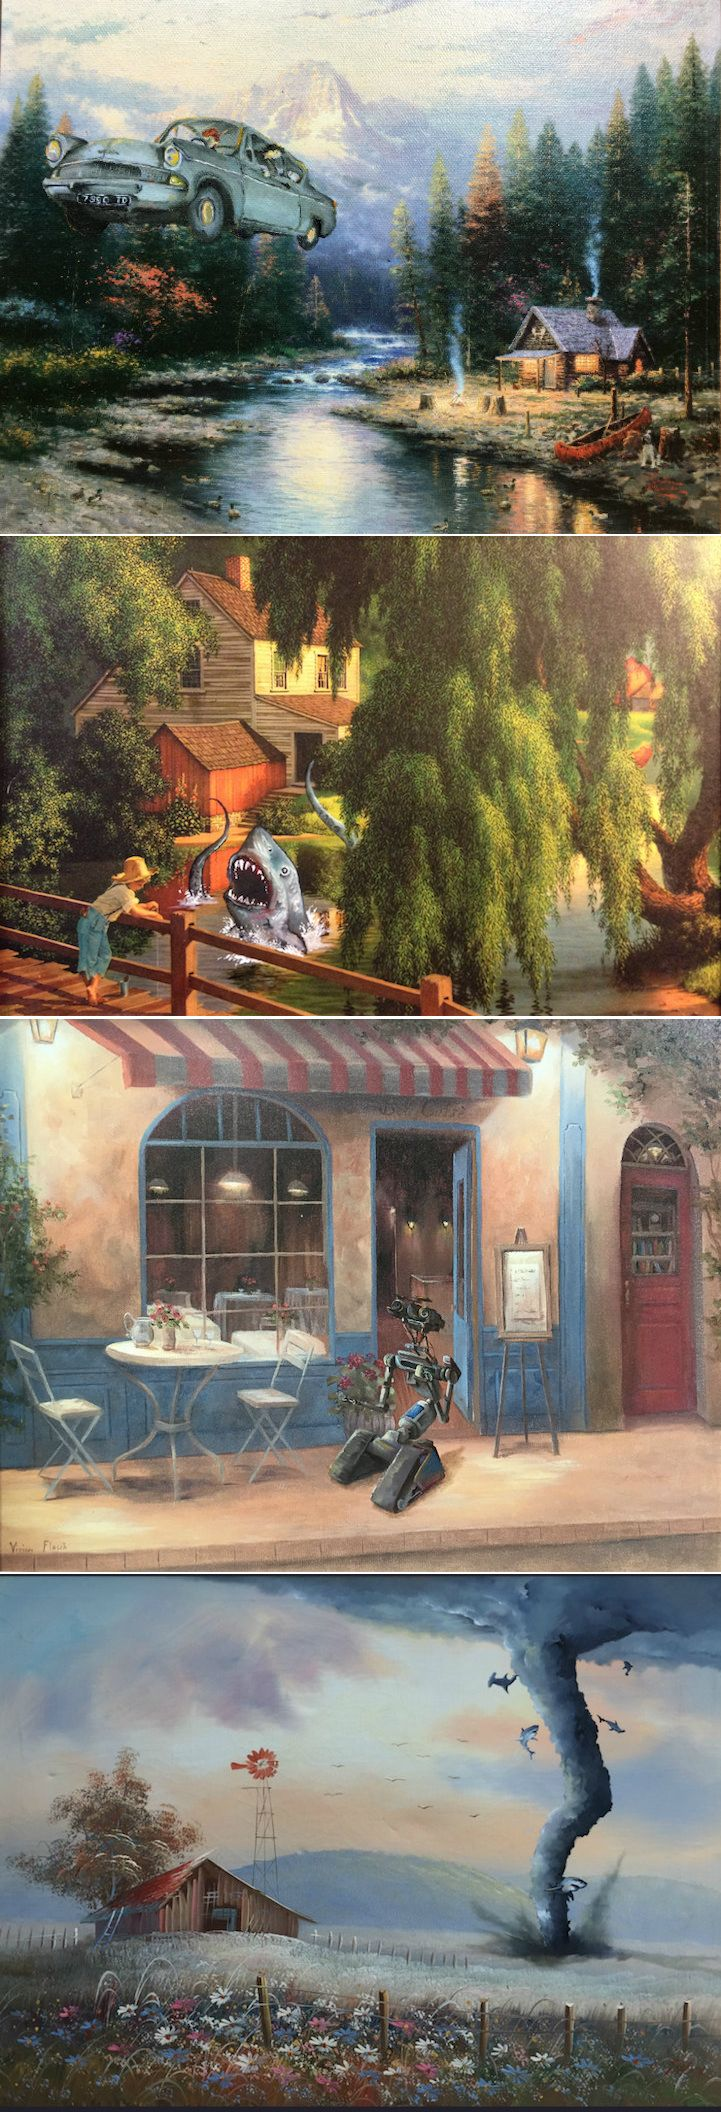 Dave Pollot takes discarded thrift store paintings and transforms them into new works of art by inserting beloved pop culture characters.